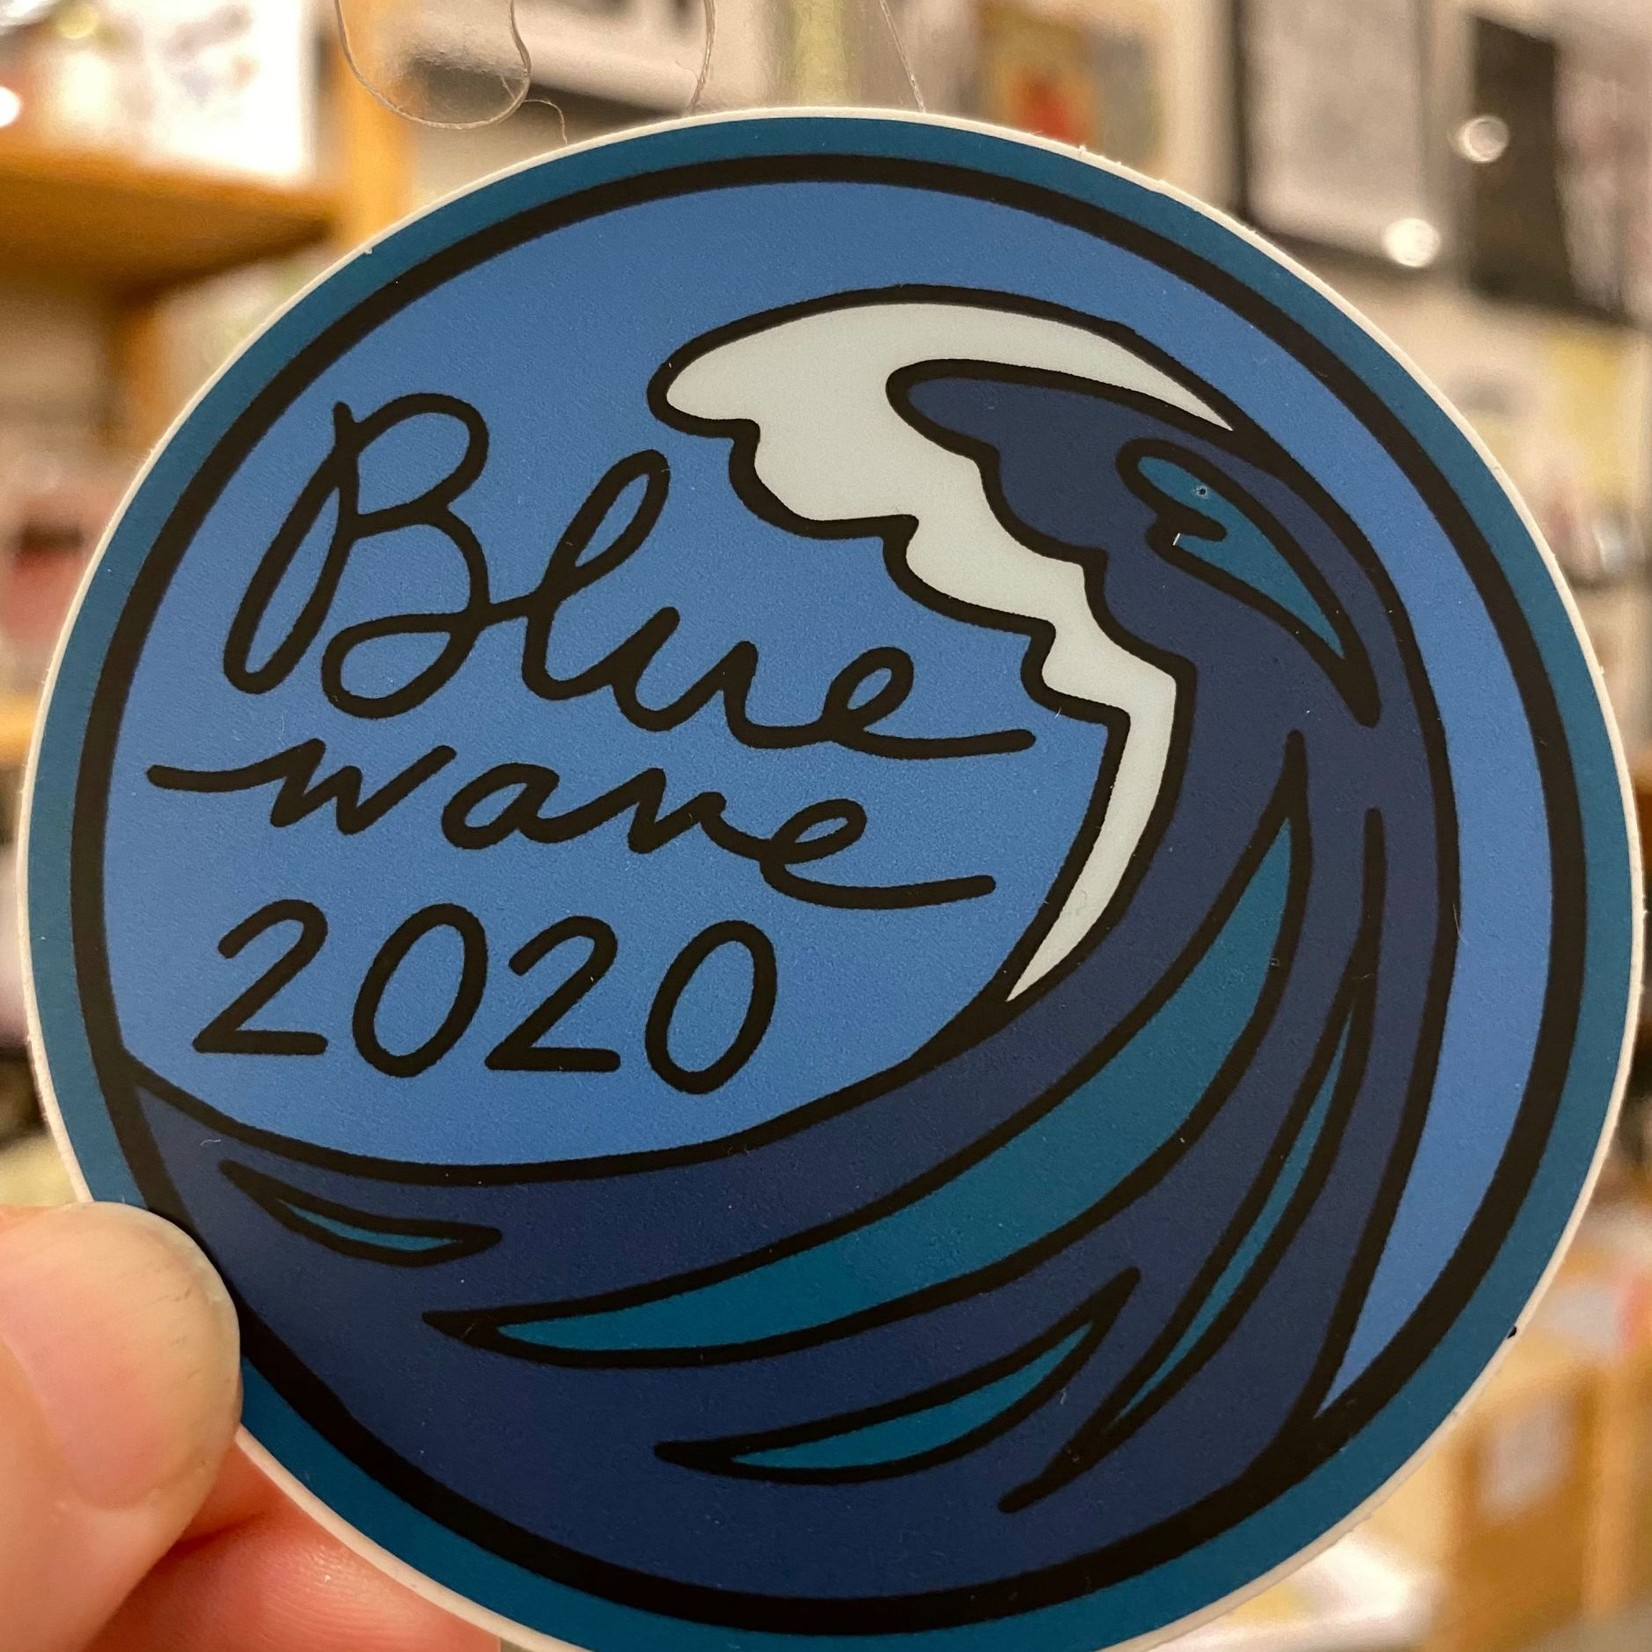 Jean Elise Designs Blue Wave 2020 Sticker